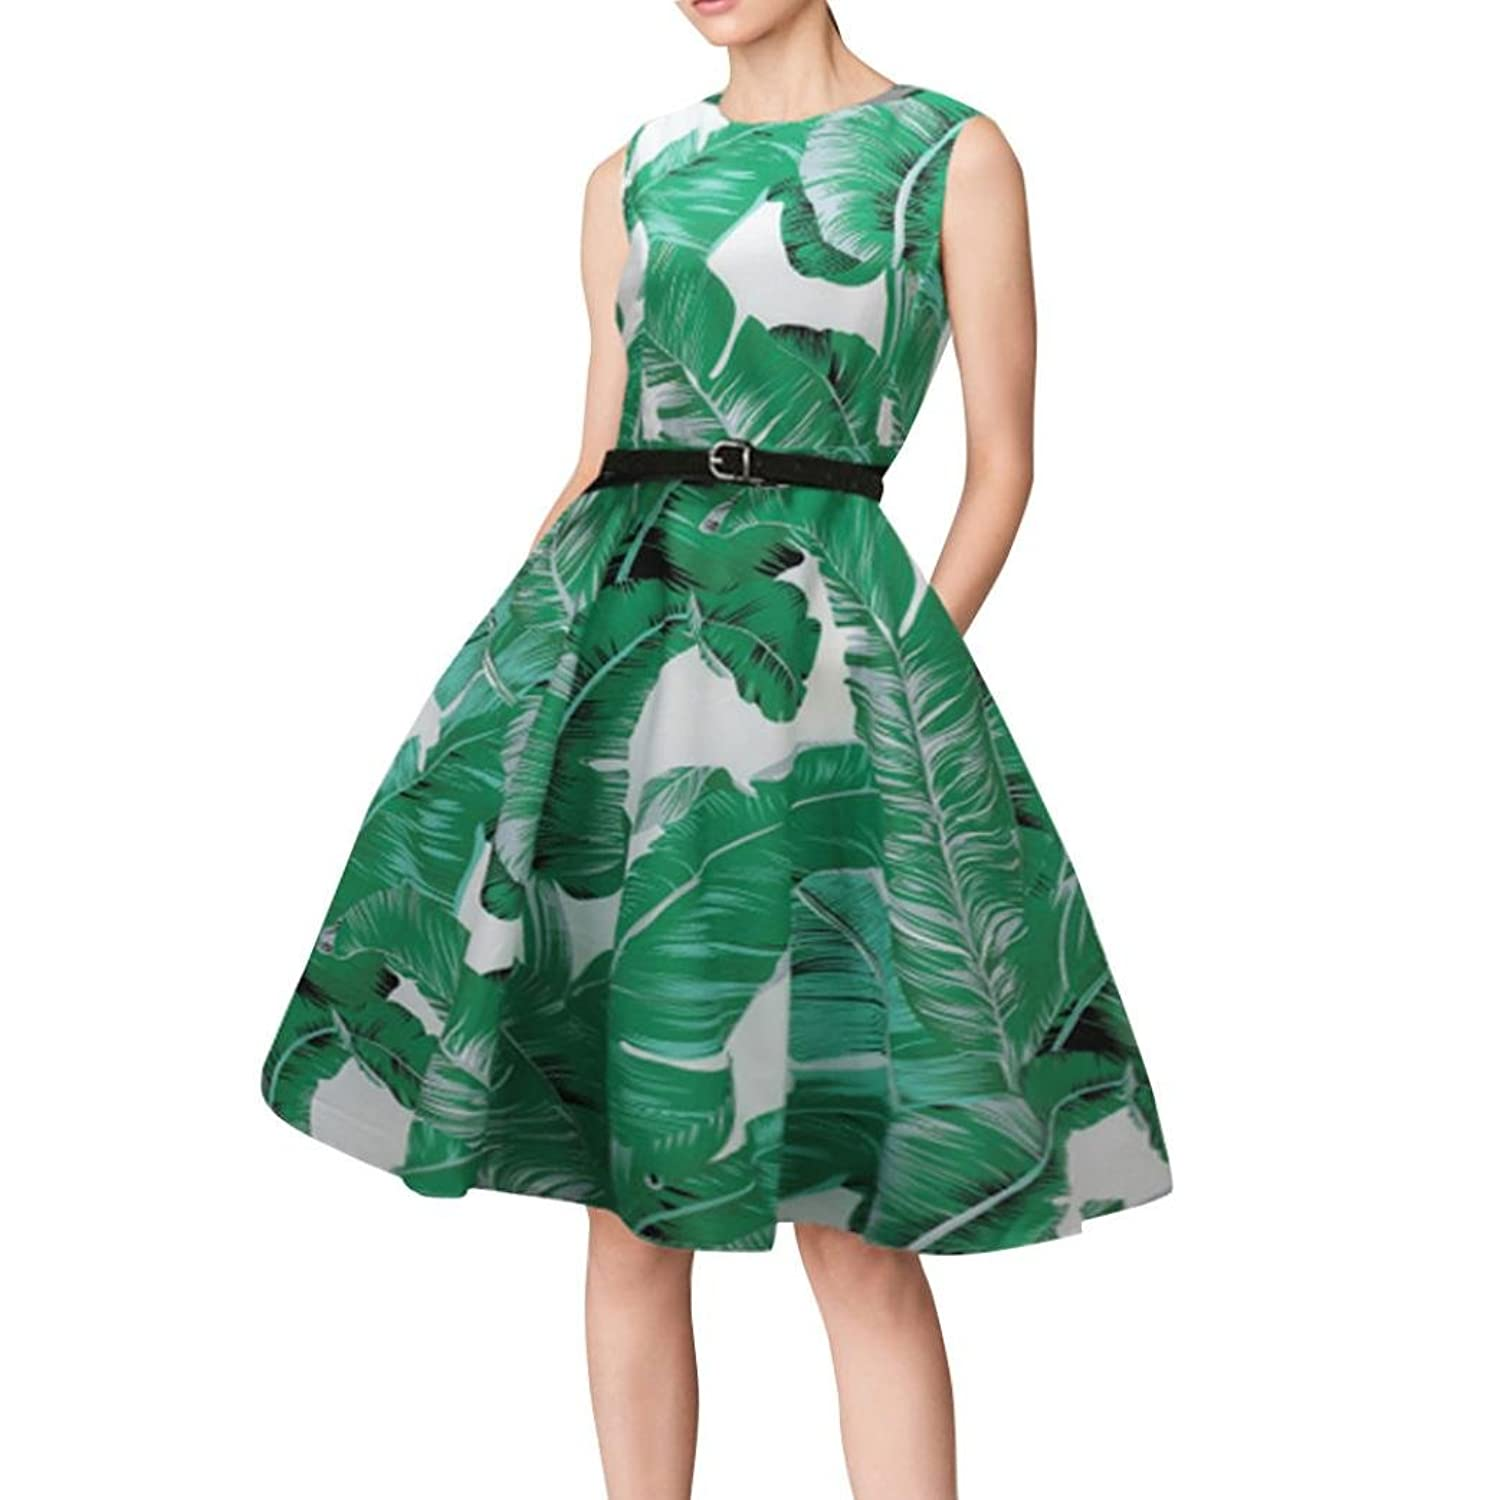 d7d84c9dbfd ... 1950 s Hepburn Dress Palm Leaf Waisted Rockabilly Swing Sundress.  Wholesale Price 9.25 -  10.05 ○ The beauty of a woman lies not in her  appearance